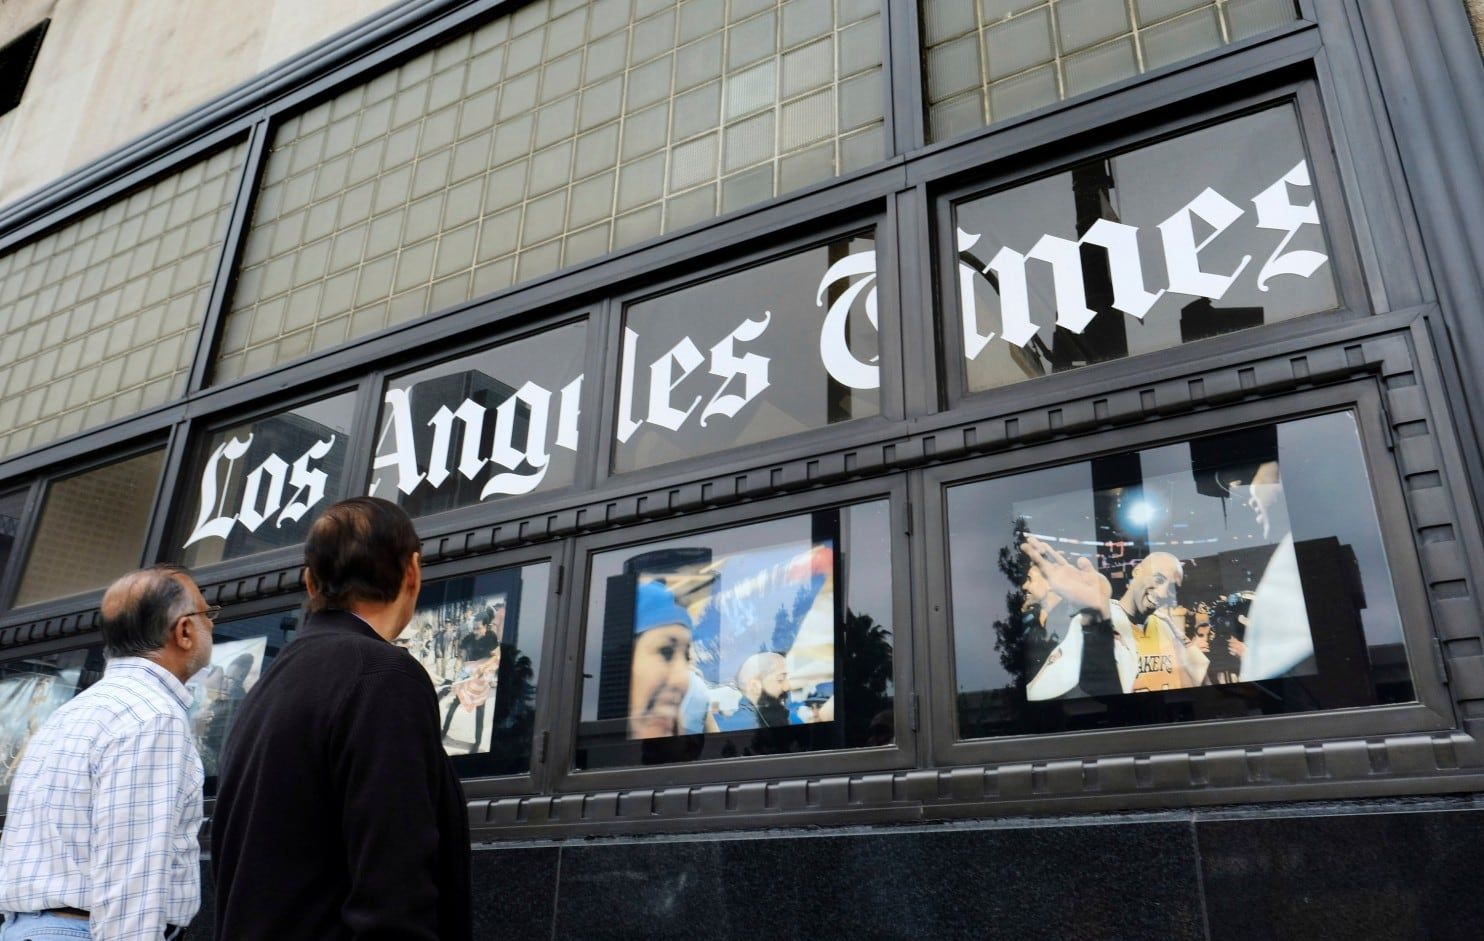 Anything Could Happen Amid Newsroom Clashes Los Angeles Times Becomes Its Own Story With Images Tribune